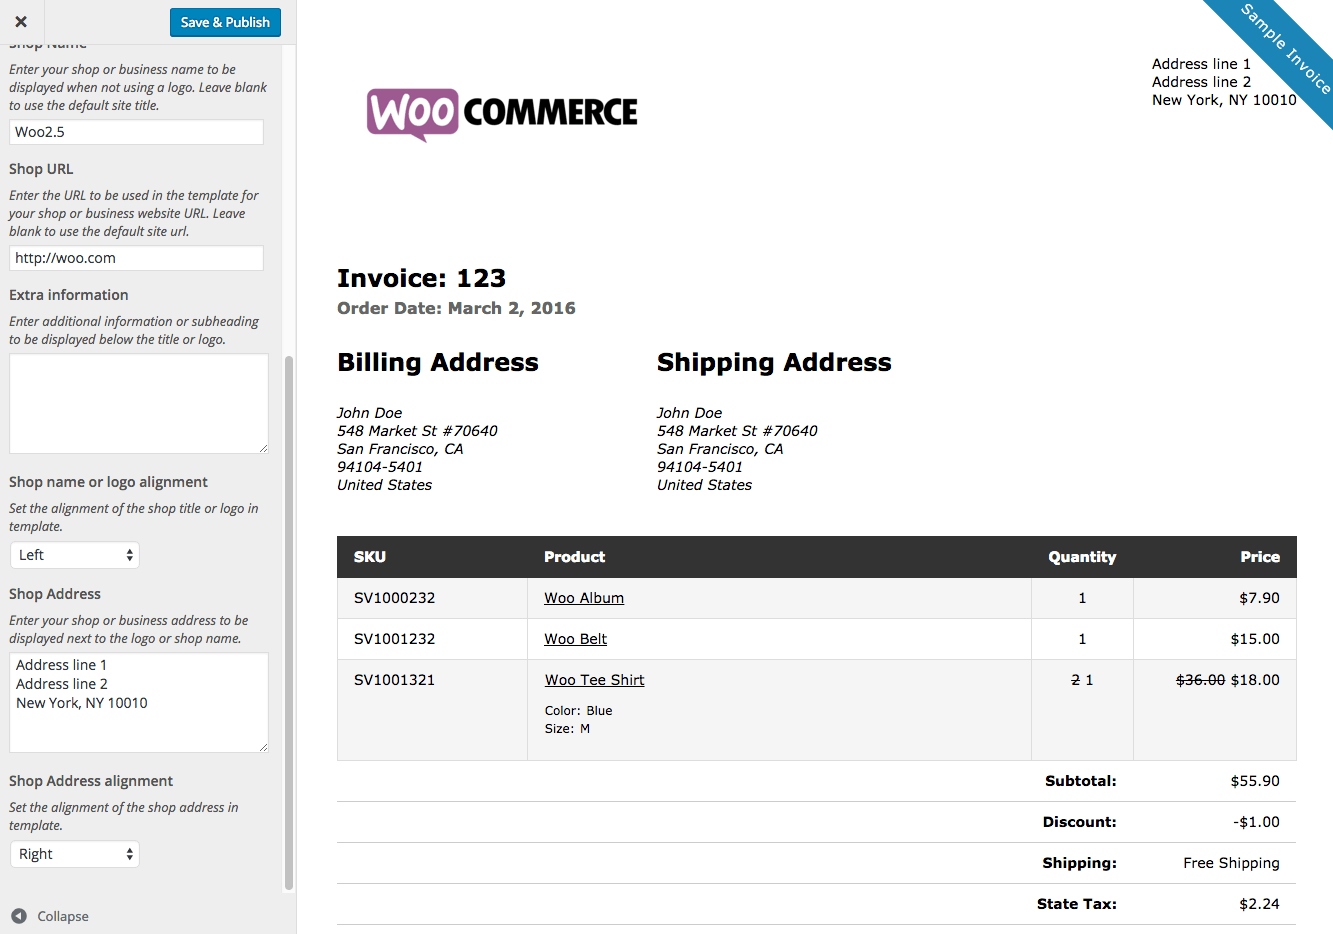 Pxworkoutfreeus  Mesmerizing Woocommerce Print Invoices Amp Packing Lists  Woocommerce Docs With Lovely Woocommerce Print Invoices  Packing Lists Customizer With Charming Define Tax Invoice Also Best Invoices In Addition Invoice Without Abn And Sales Tax Invoice As Well As Consultant Invoice Template Free Additionally Online Invoices Free Template From Docswoocommercecom With Pxworkoutfreeus  Lovely Woocommerce Print Invoices Amp Packing Lists  Woocommerce Docs With Charming Woocommerce Print Invoices  Packing Lists Customizer And Mesmerizing Define Tax Invoice Also Best Invoices In Addition Invoice Without Abn From Docswoocommercecom